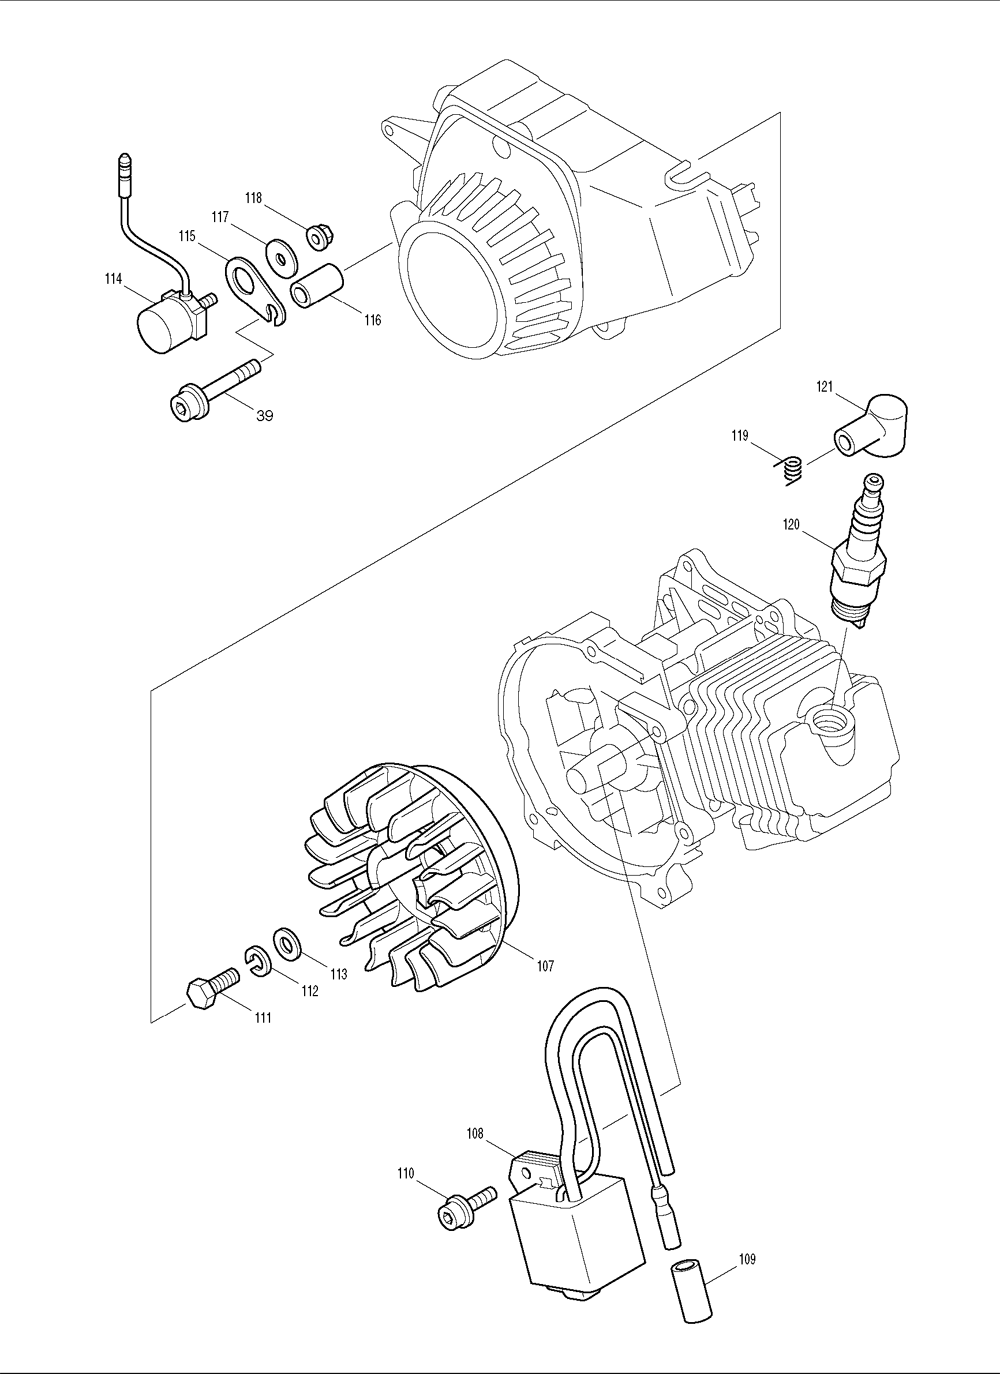 Makita-EW100R-415-PBBreak Down